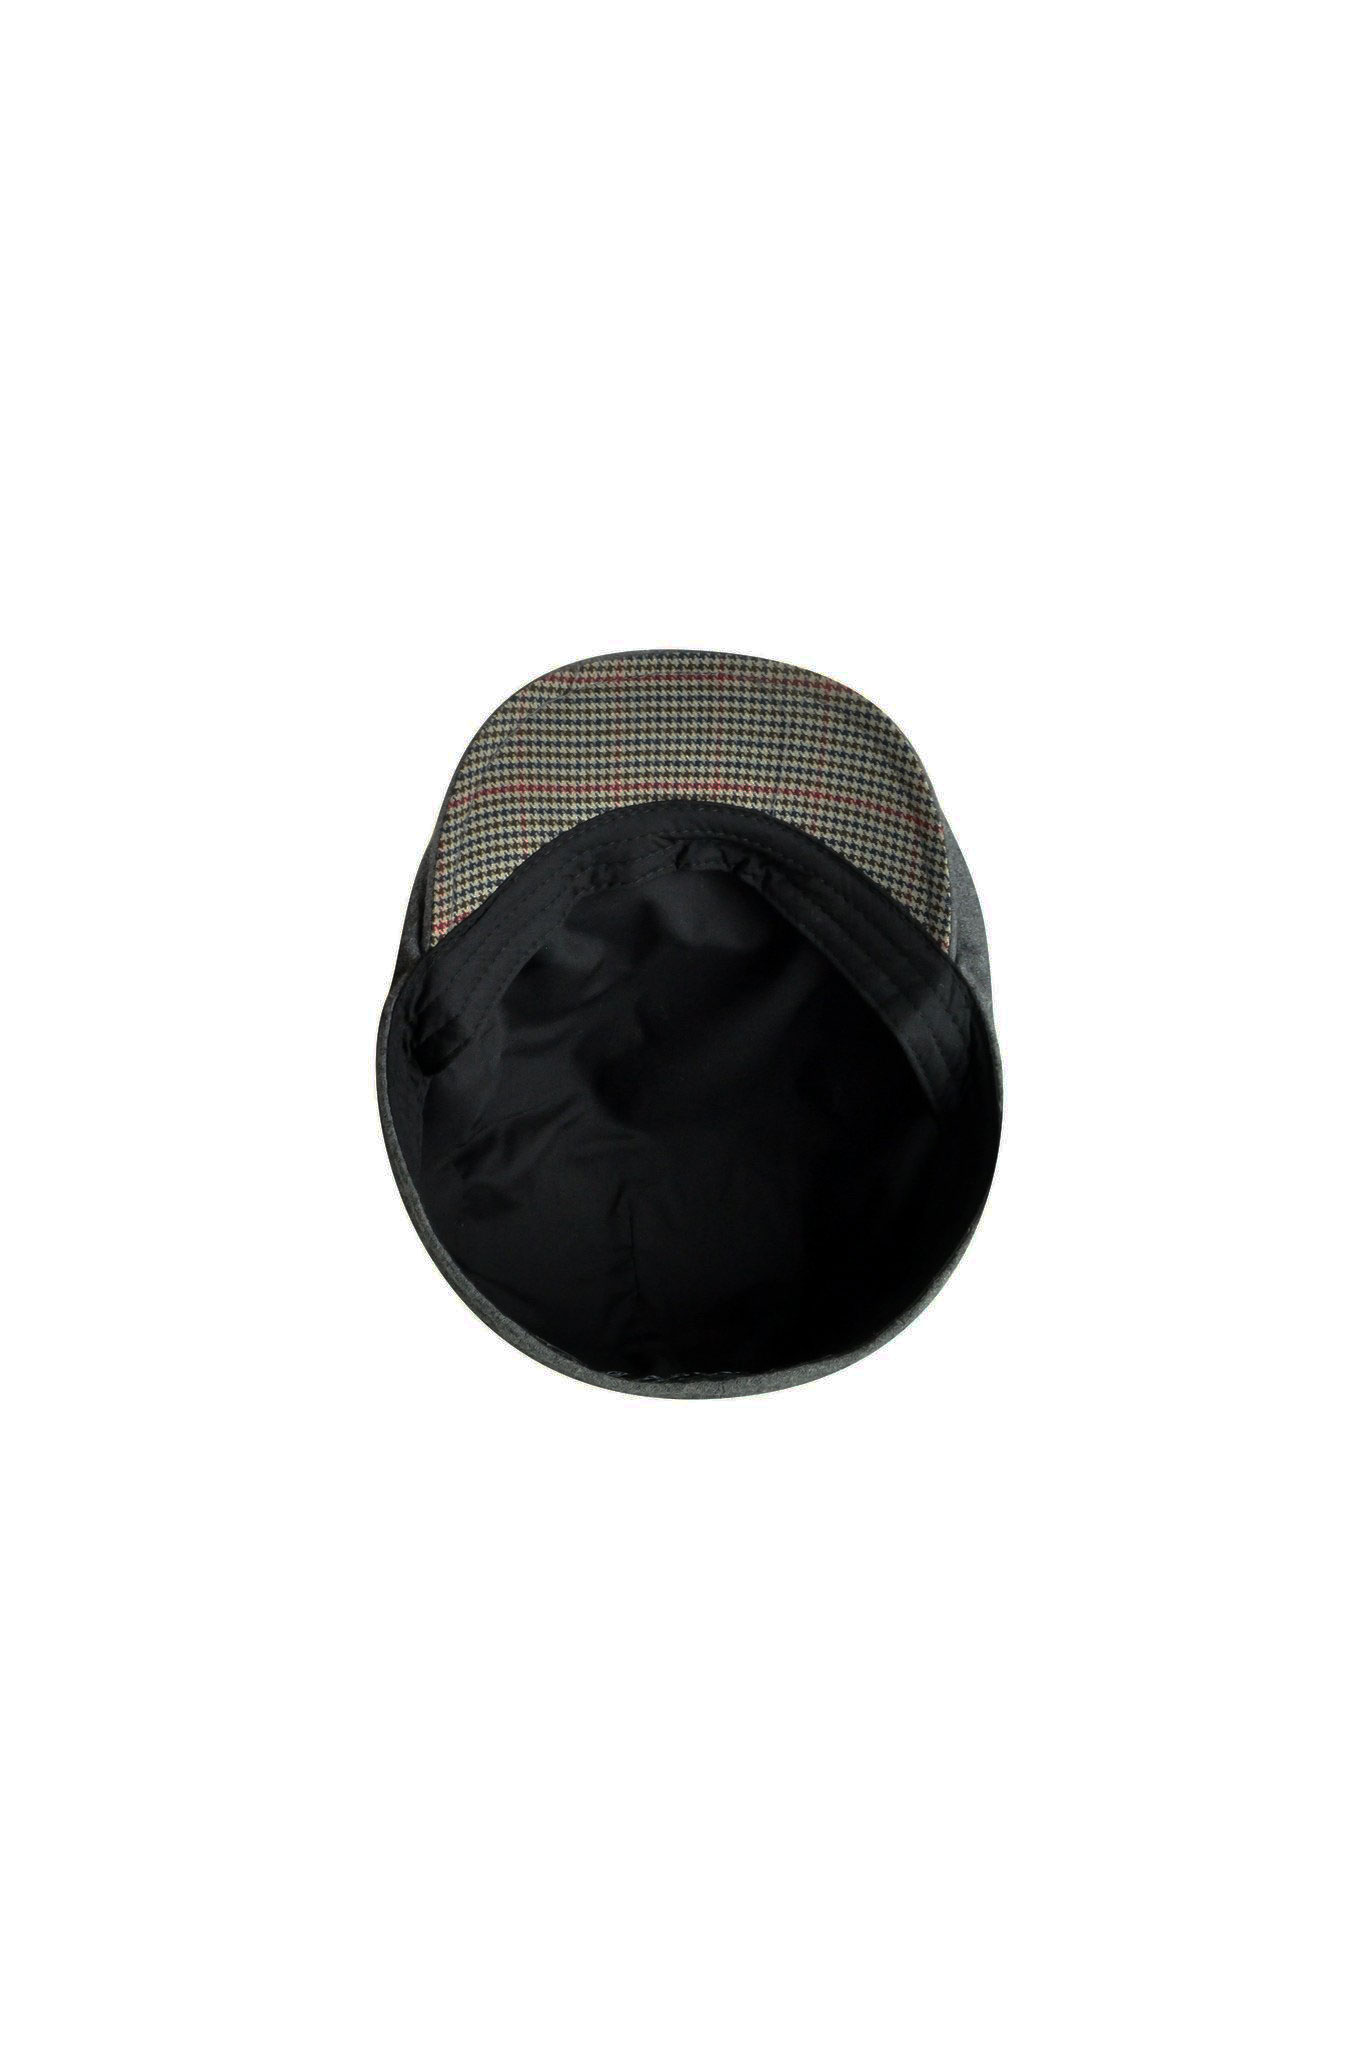 c983d518675 Classic Style. Goorin Mikey Ivy Flat Cap In Charcoal